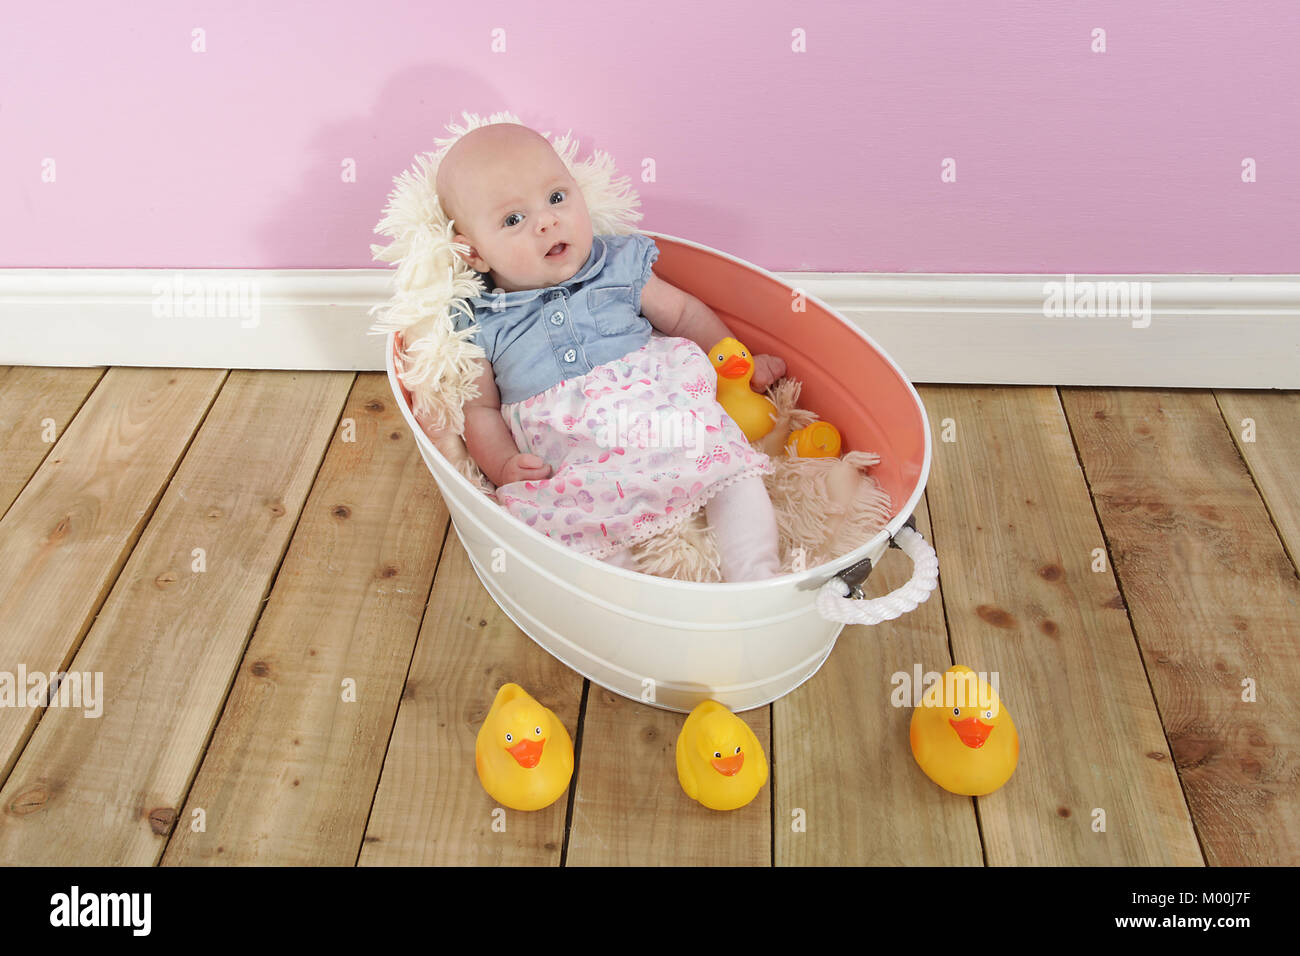 2 Month Old Baby Girl In Bath Tub With Toy Ducks Pretty Little Girl